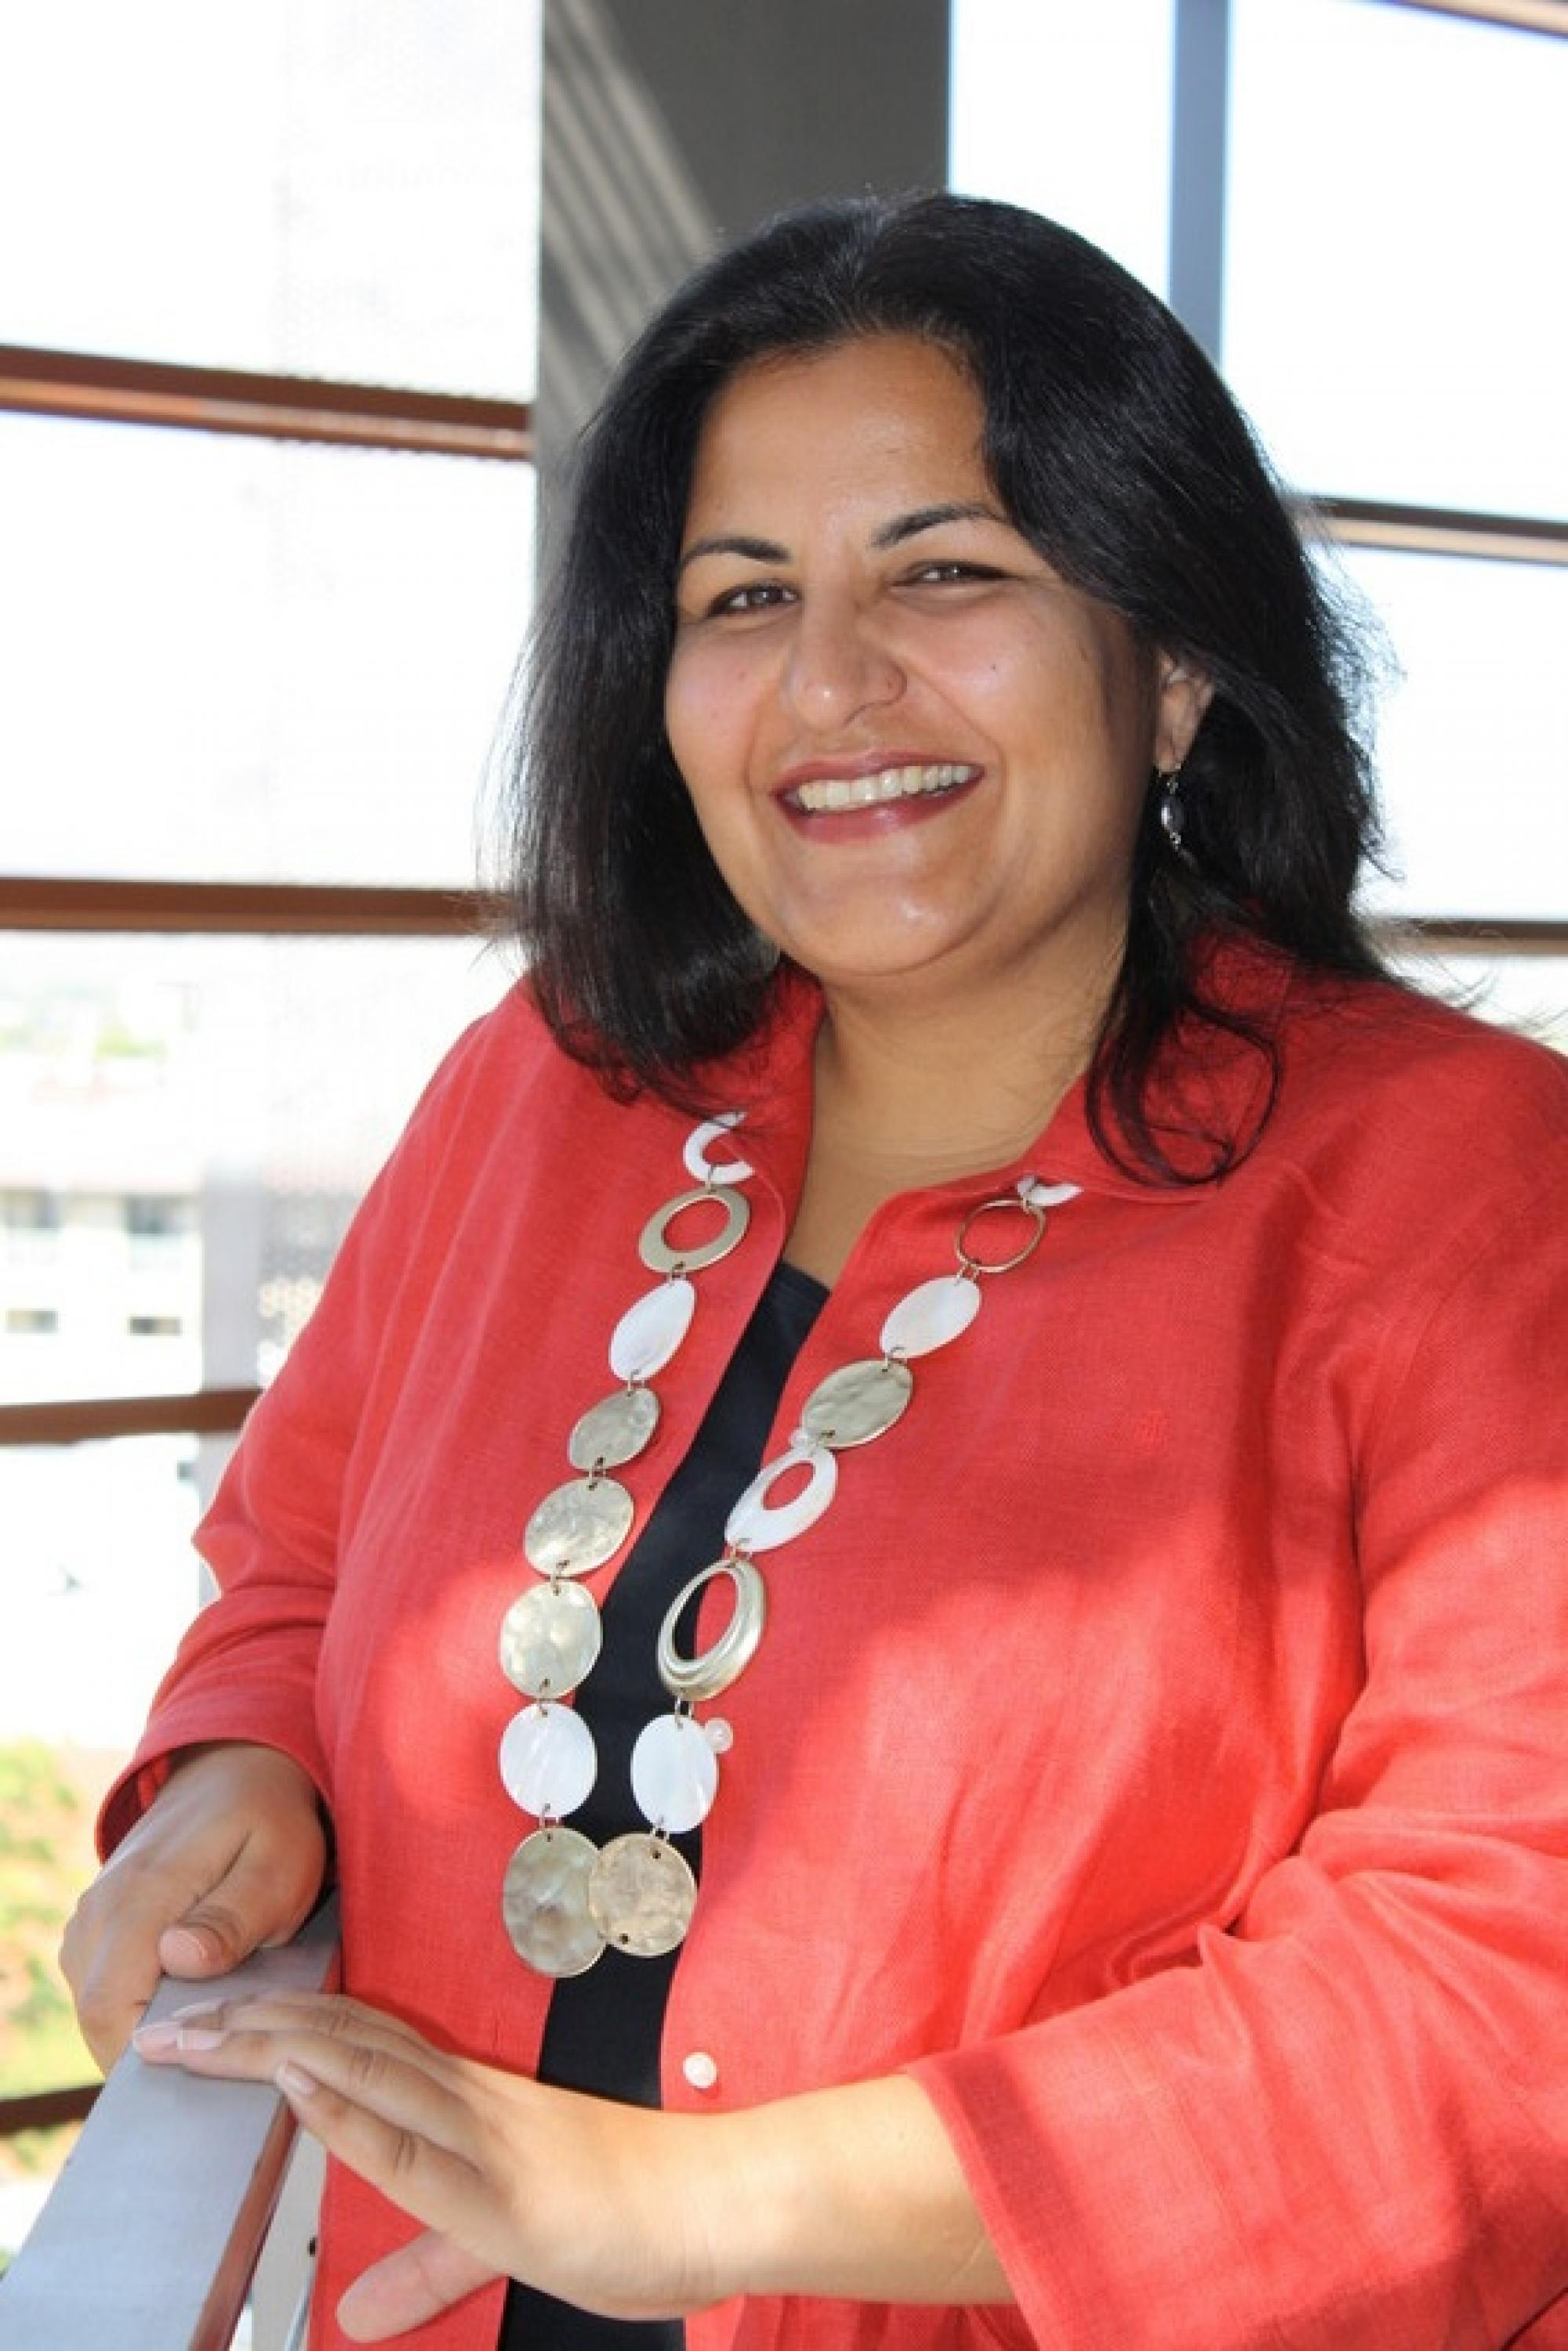 UA faculty member Anita Bhappu has been investigating digital coupon usage, involving prior and current graduate students. Project collaborators included Jennifer Andrews, Charles Lawry and Zeinou Toure – all in retailing and consumer sciences. She also h